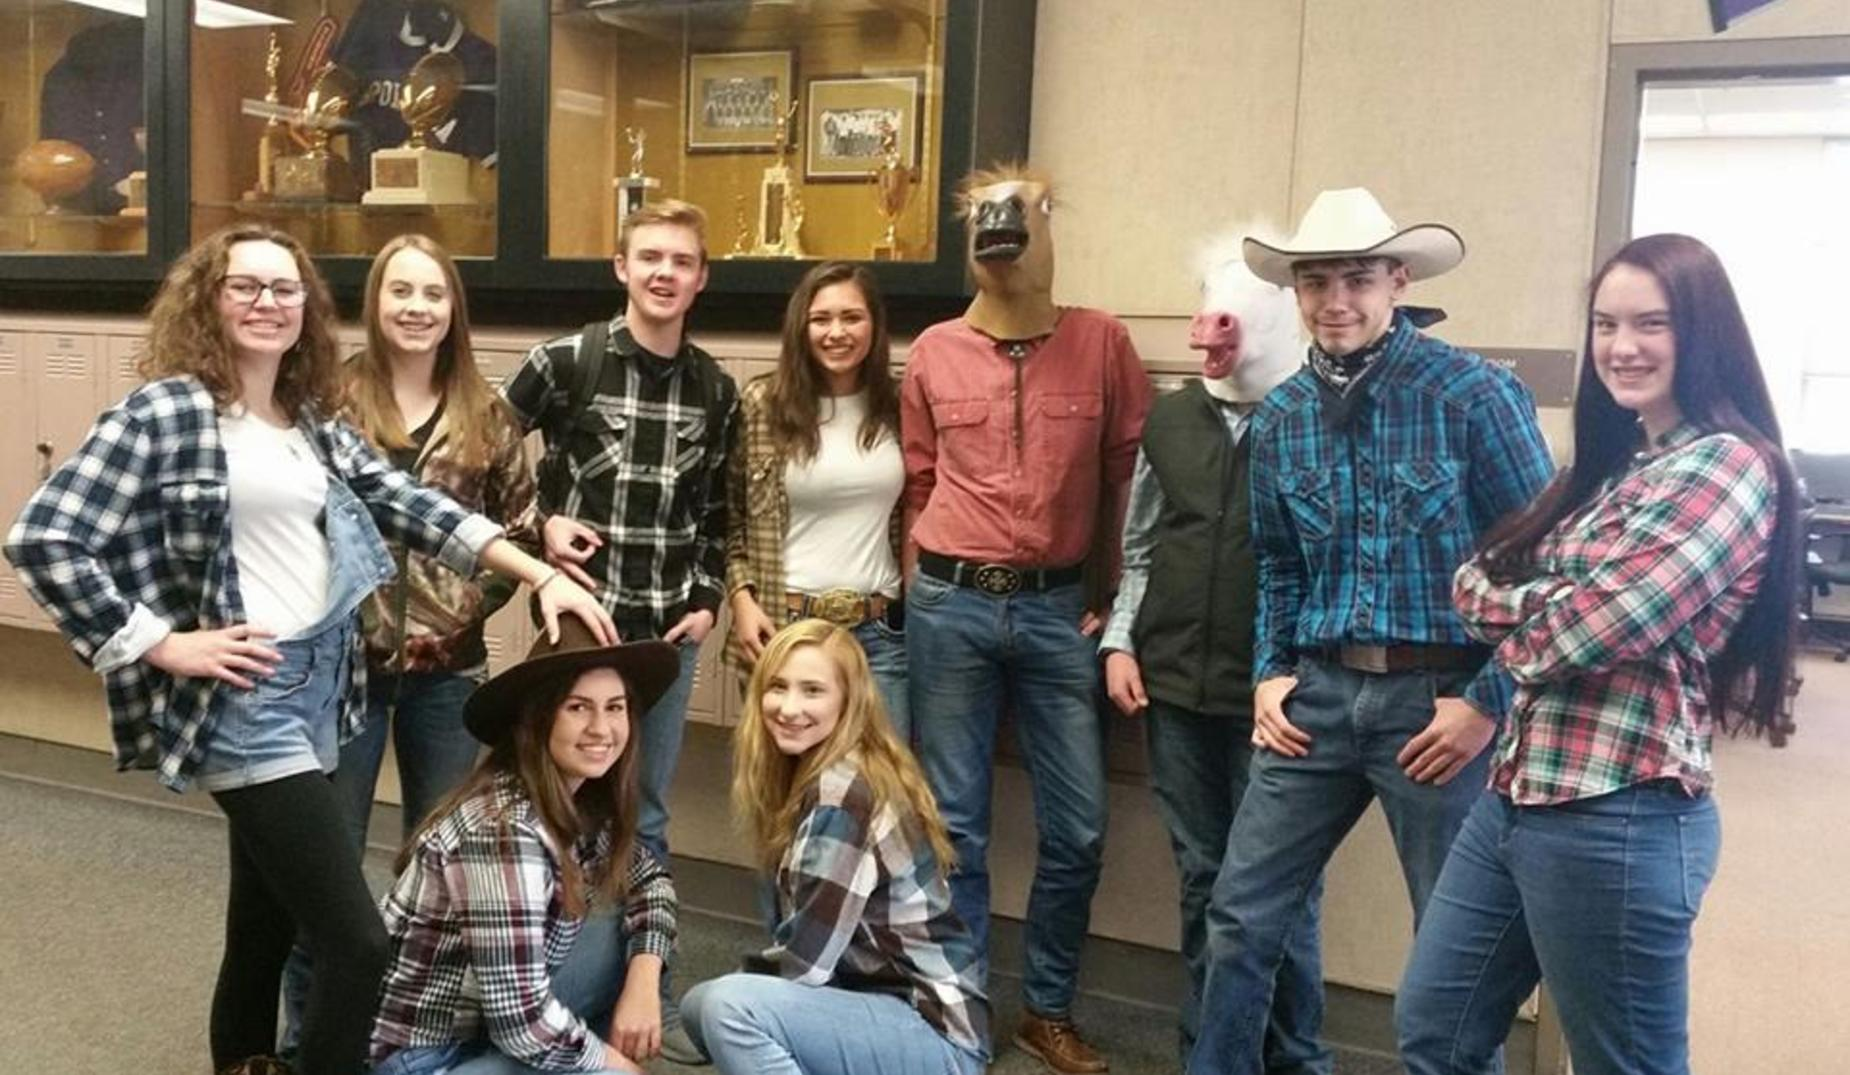 Cowboy day during Homecoming